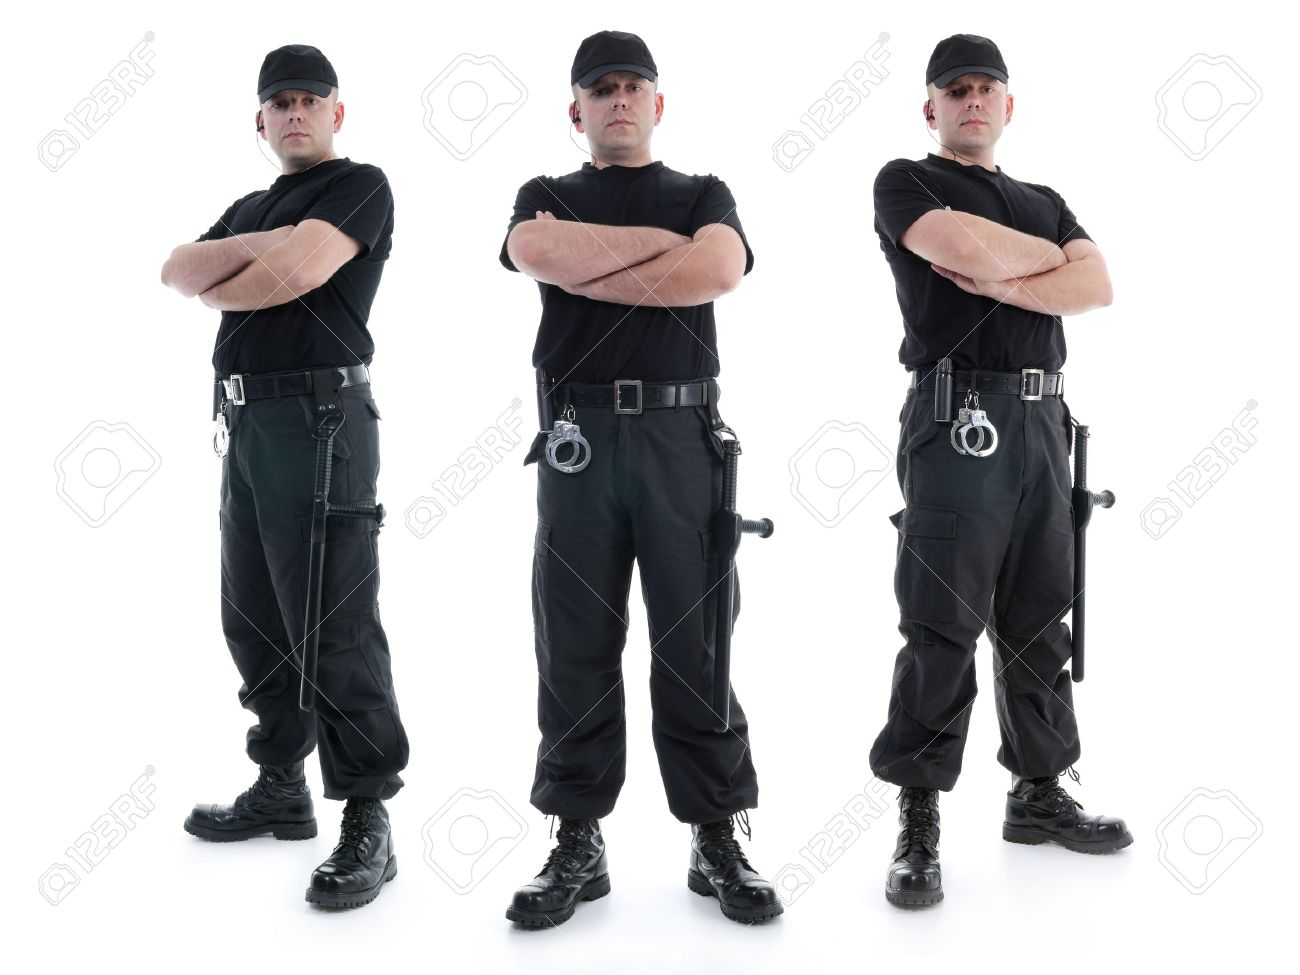 e9829403 Stock Photo - Three security men wearing black uniform equipped with police  clubs and handcuffs standing confidently with arms crossed from left to  right, ...